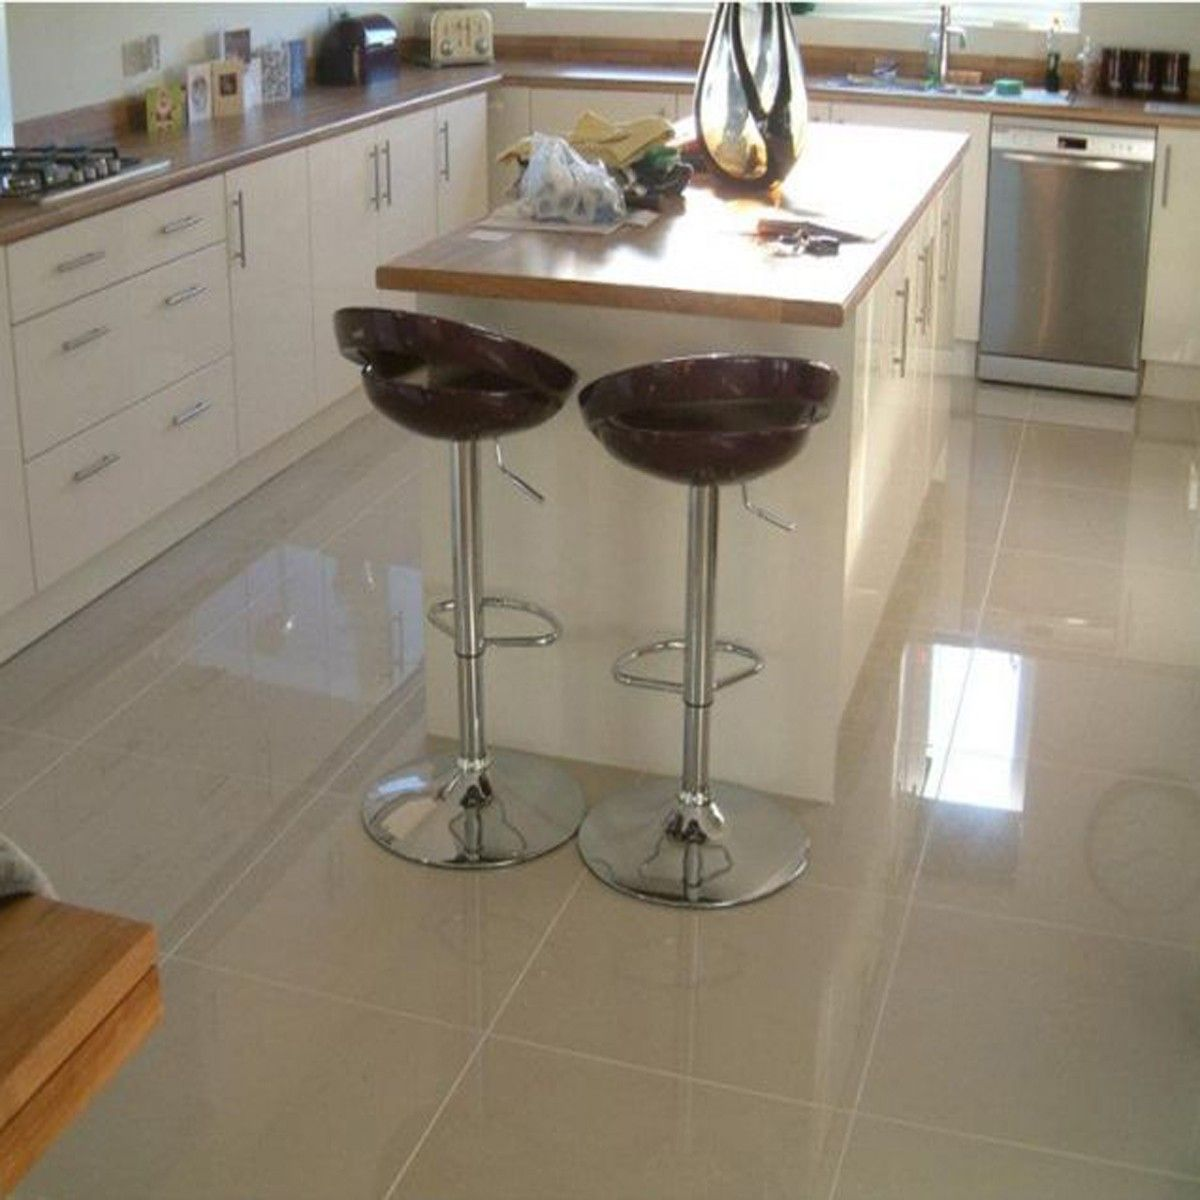 Porcelain Floor Kitchen Floor Only Flooring Ideas Pinterest Dark Cream And Search